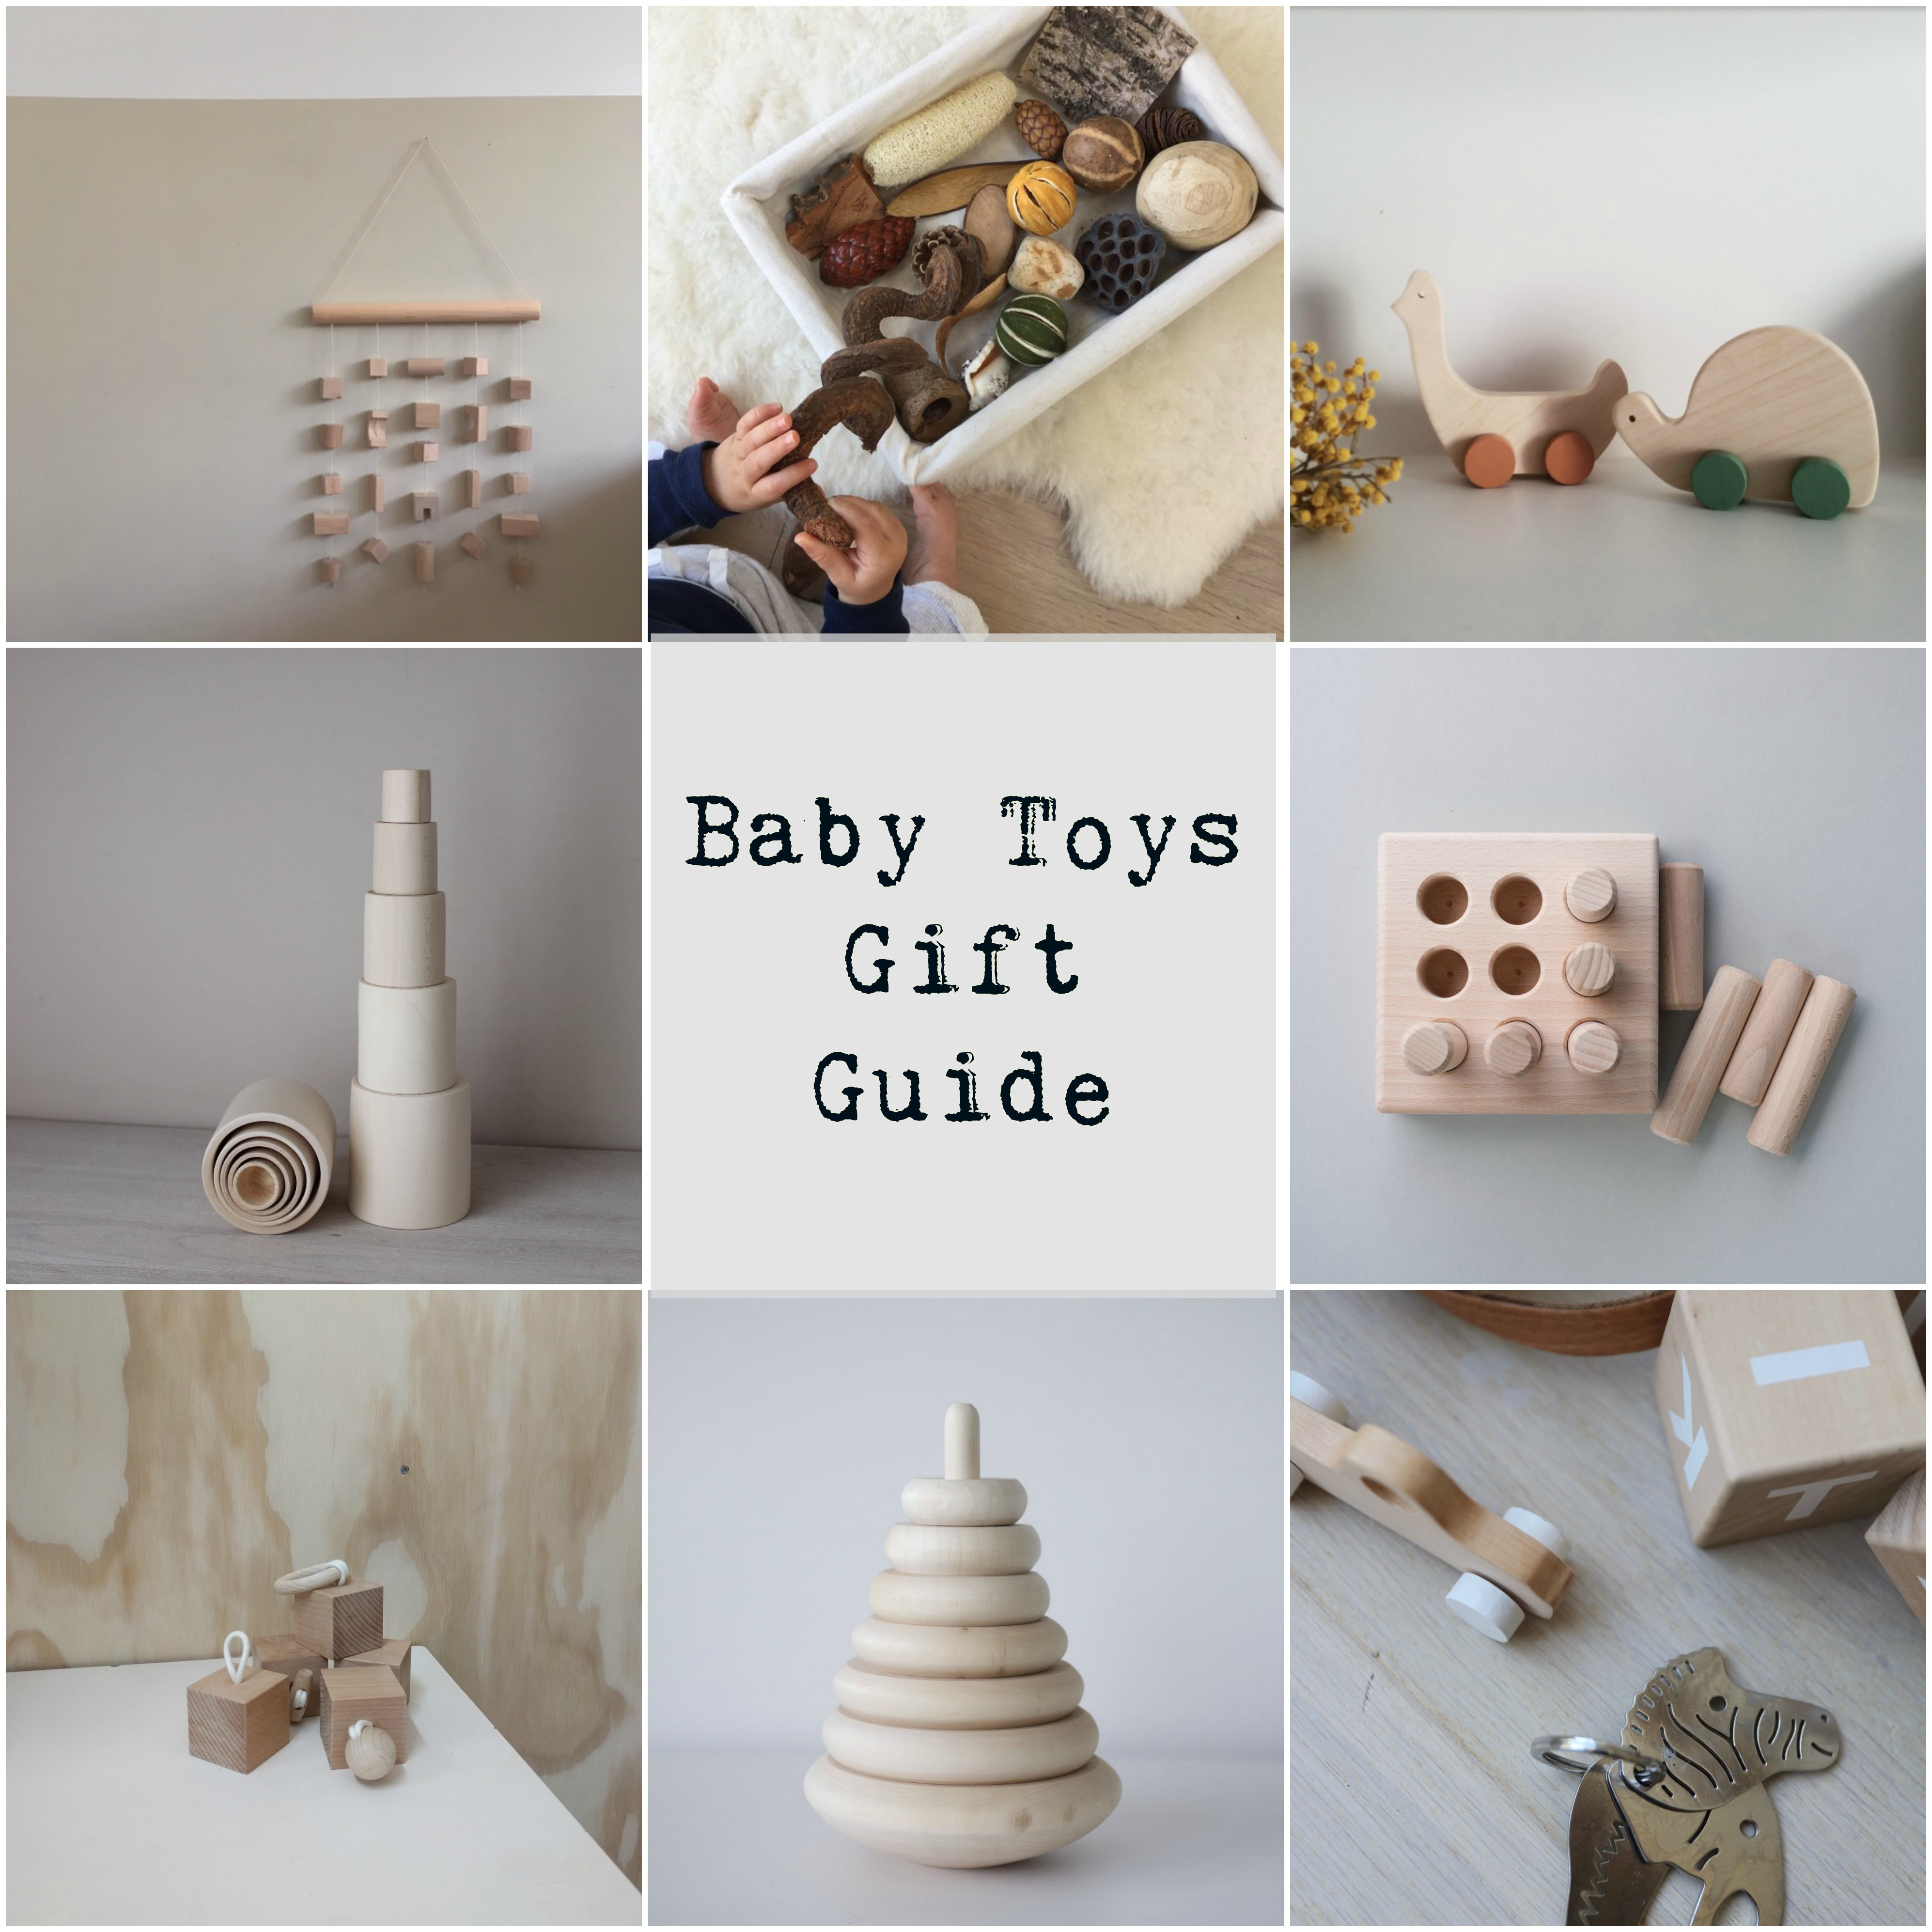 Baby_toys_gift_guide